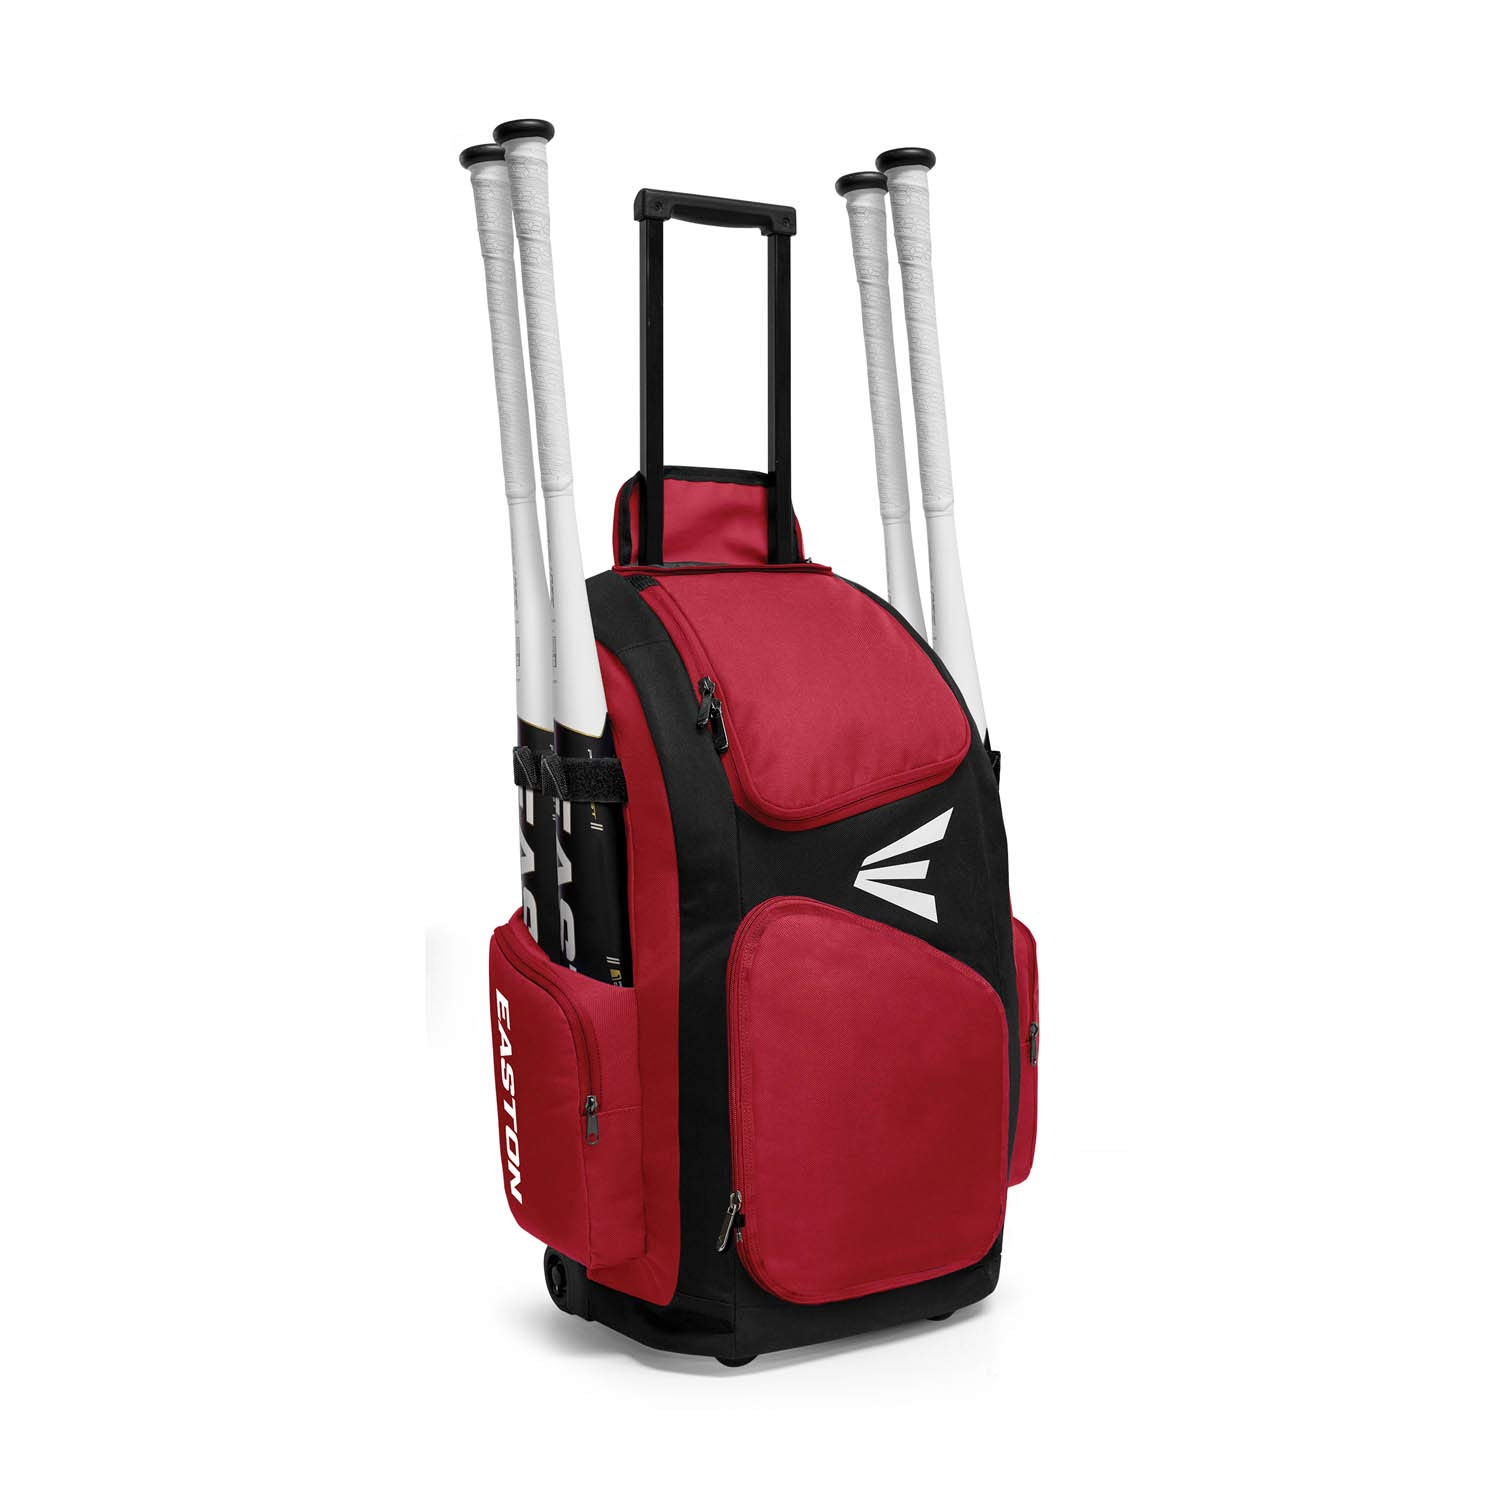 EASTON TRAVELER Bat & Equipment Wheeled Bag | Baseball Softball | 2019 | Red | 4 Bat Sleeves | Vented Gear & Shoe Compartments | 2 Side Zippered Pockets | Telescope Handle | Stands Up | Fence Hook by Easton (Image #1)